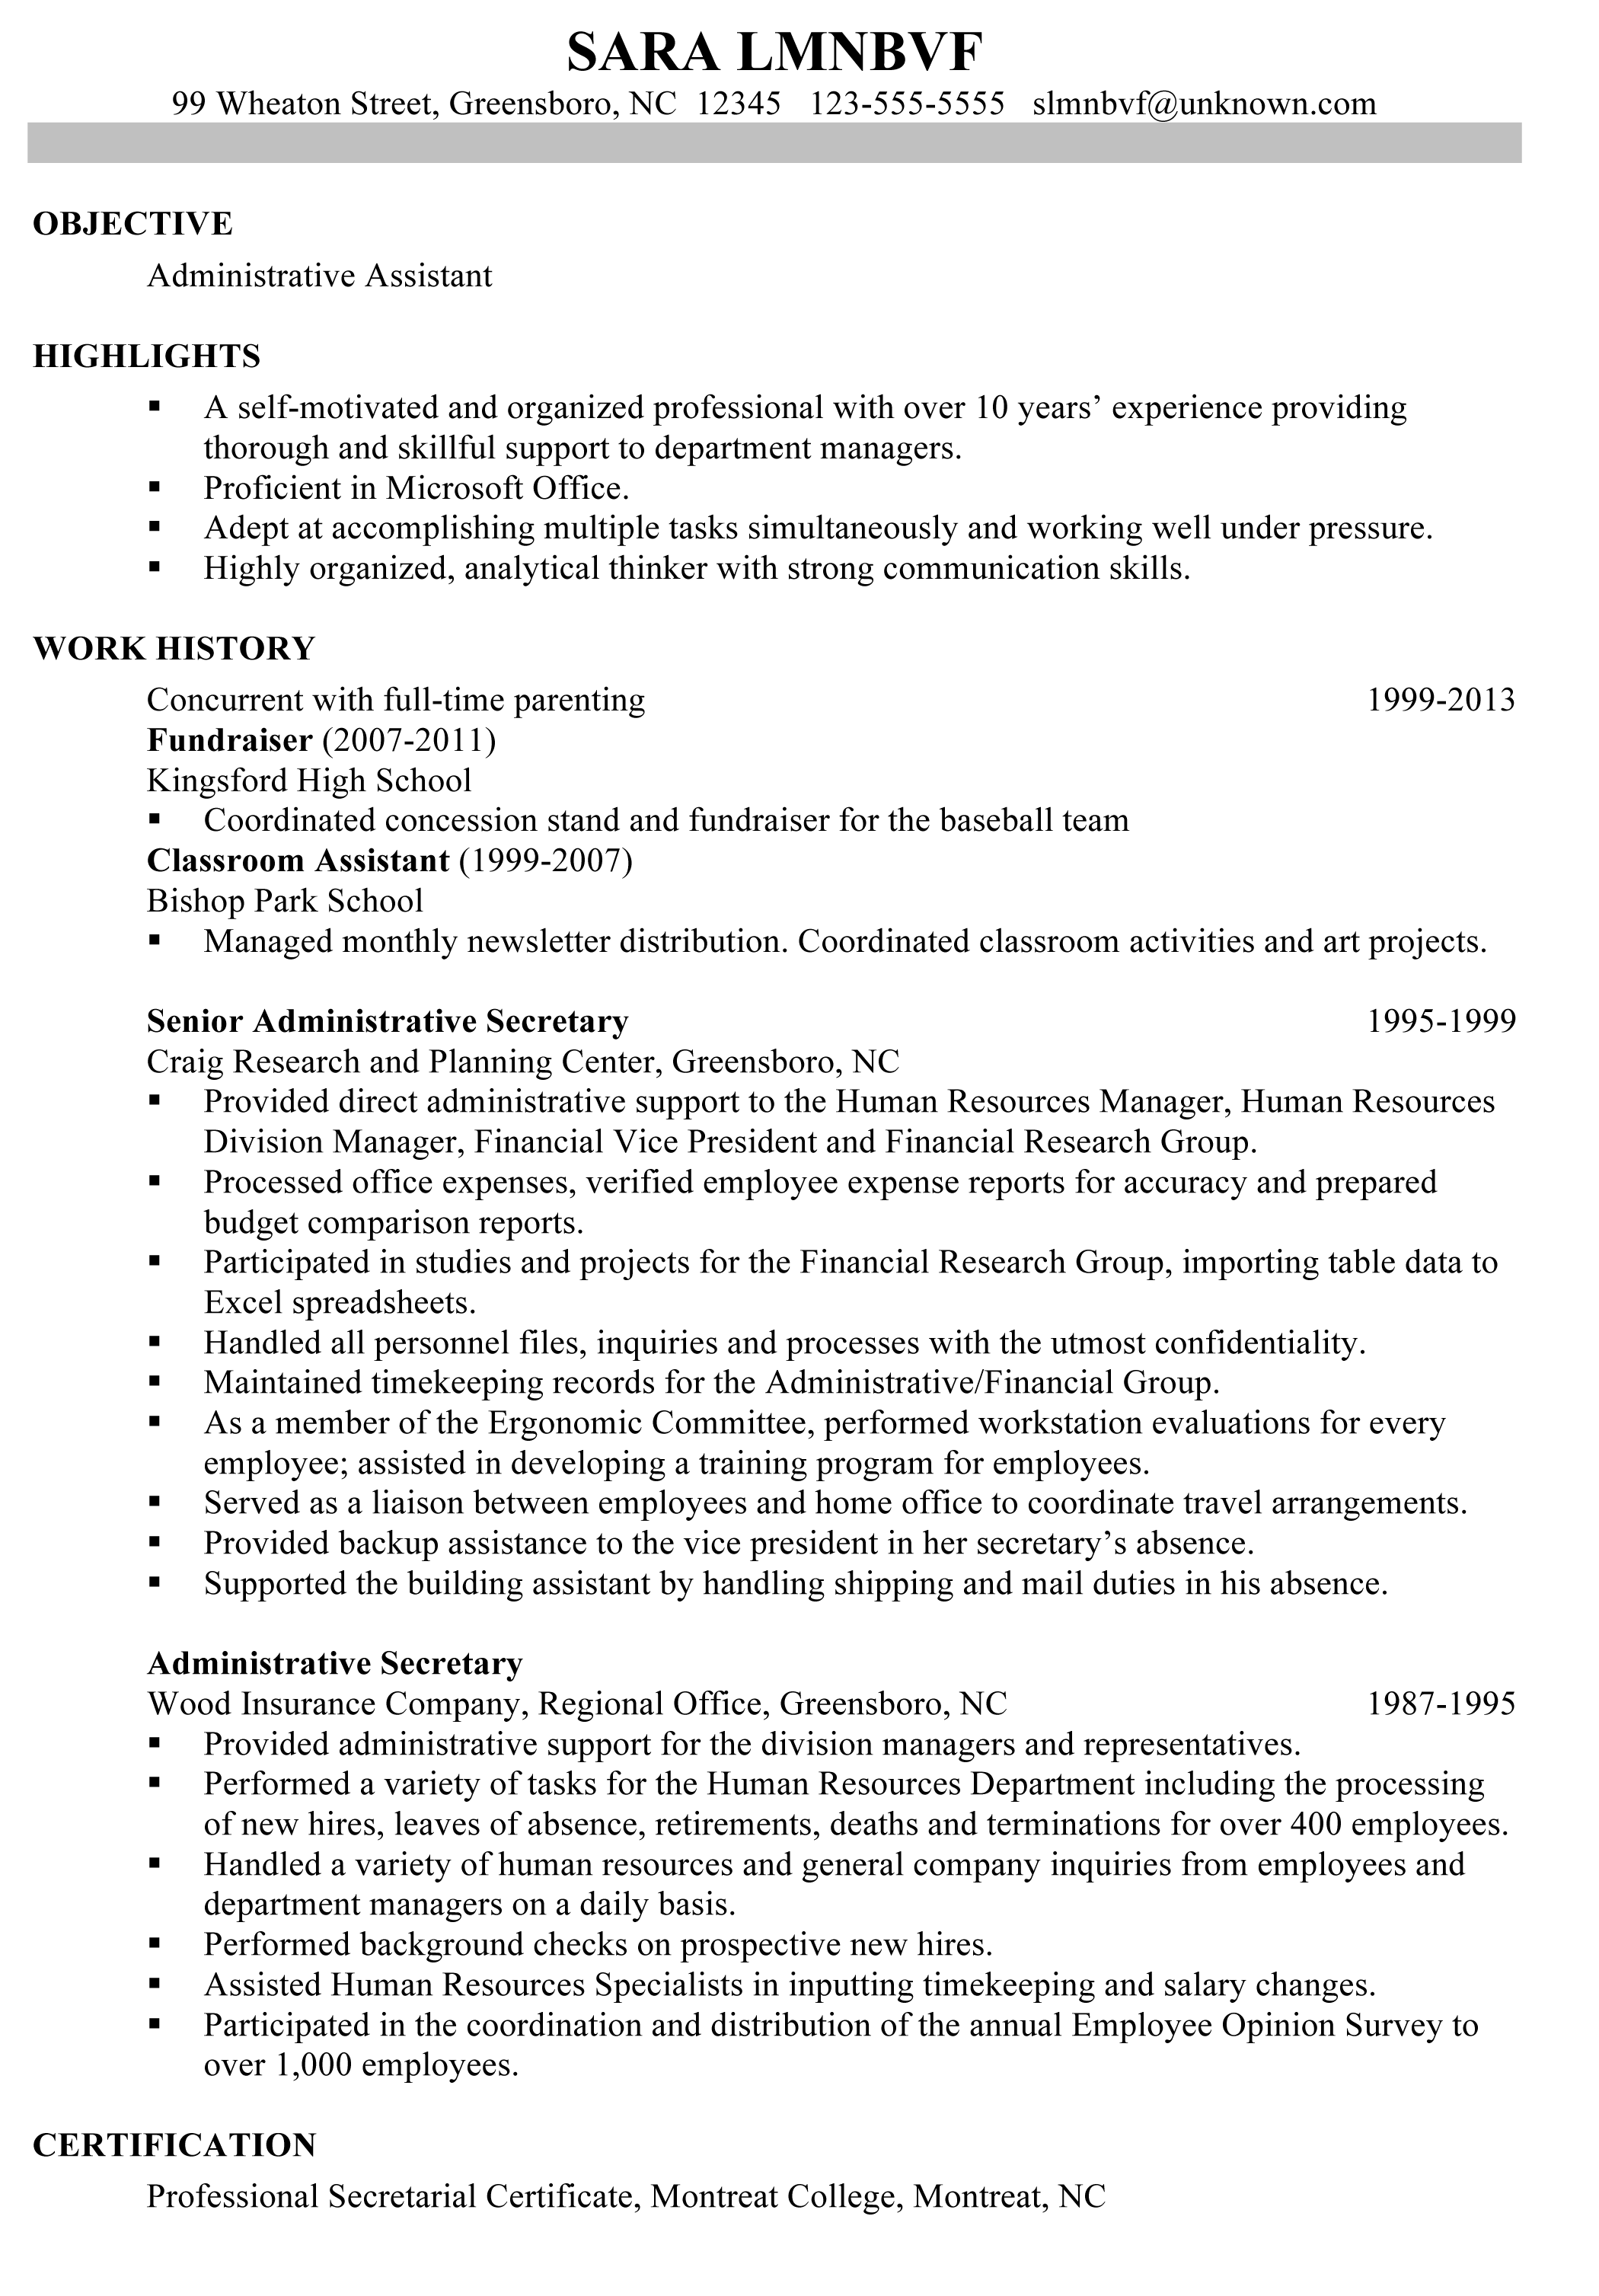 free matching resume and cover letter templates